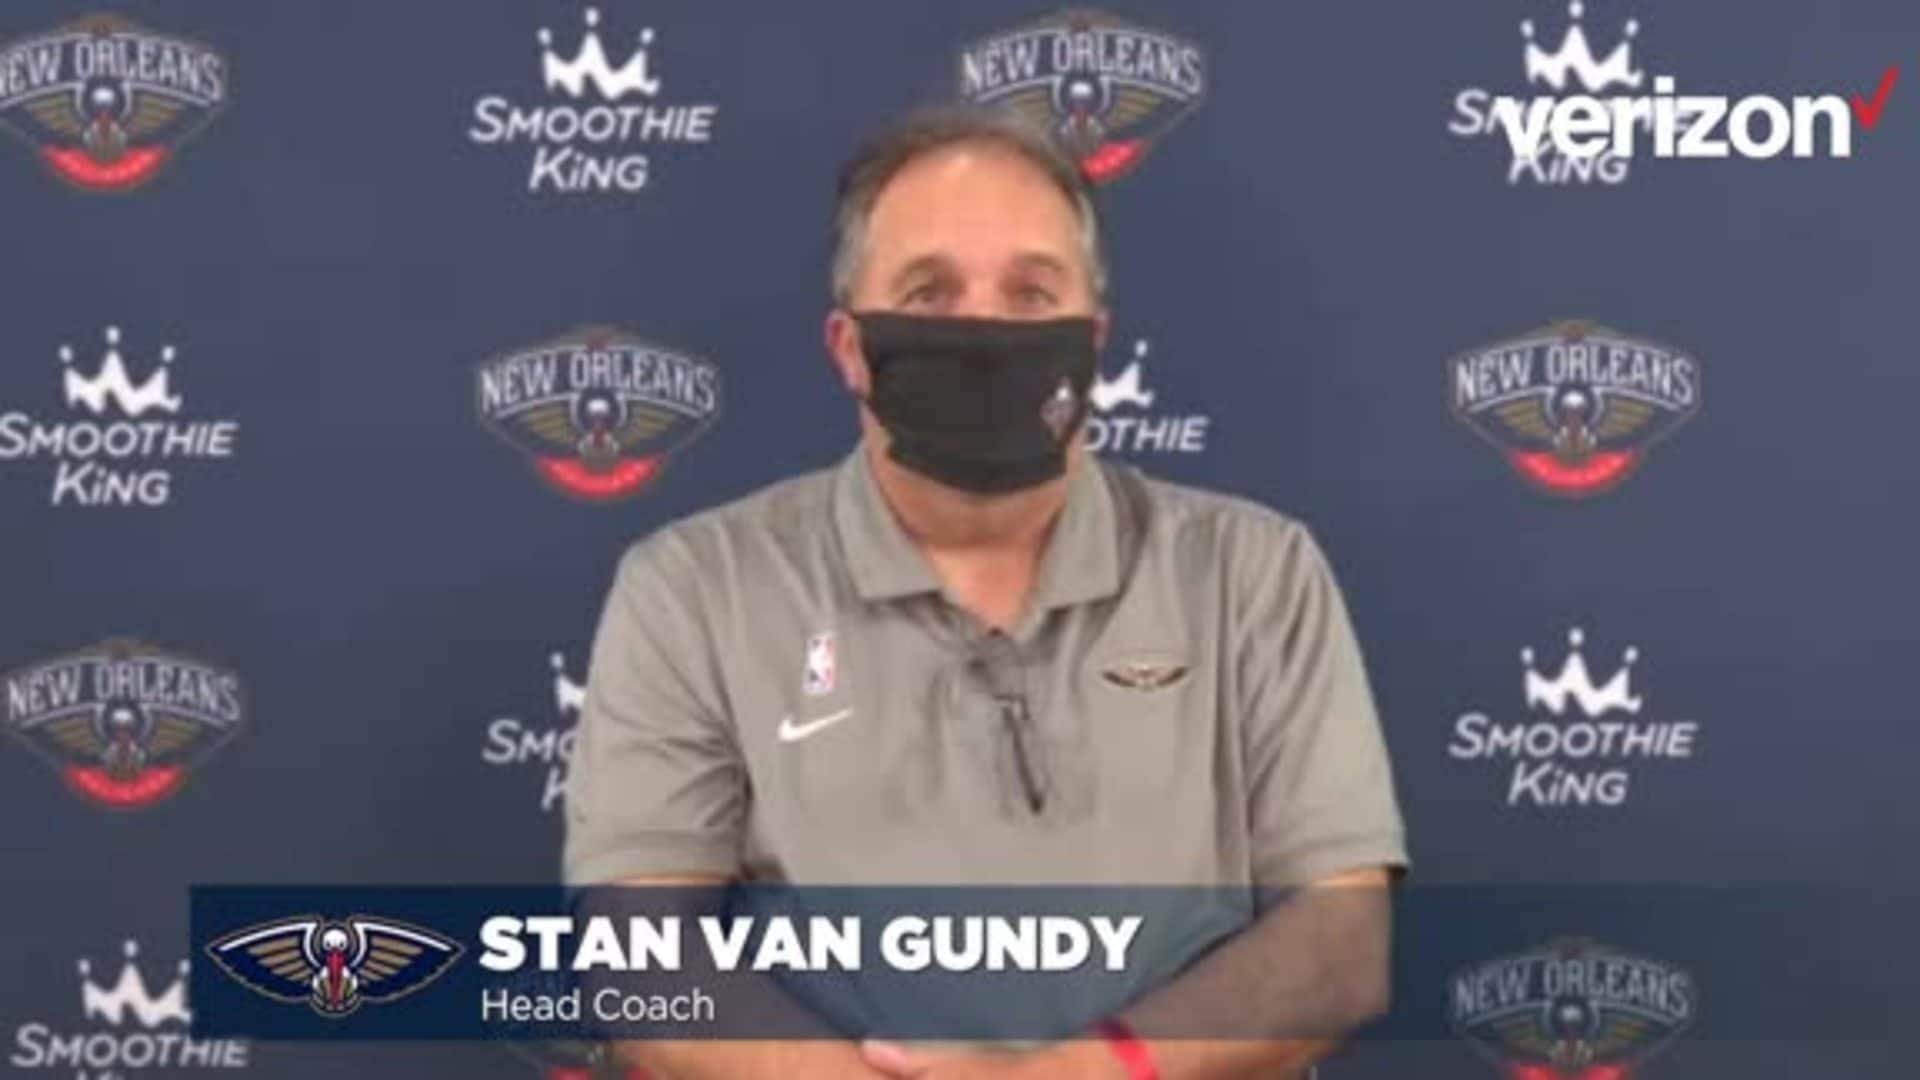 Stan Van Gundy talks Pelicans' upcoming season ahead of player workouts